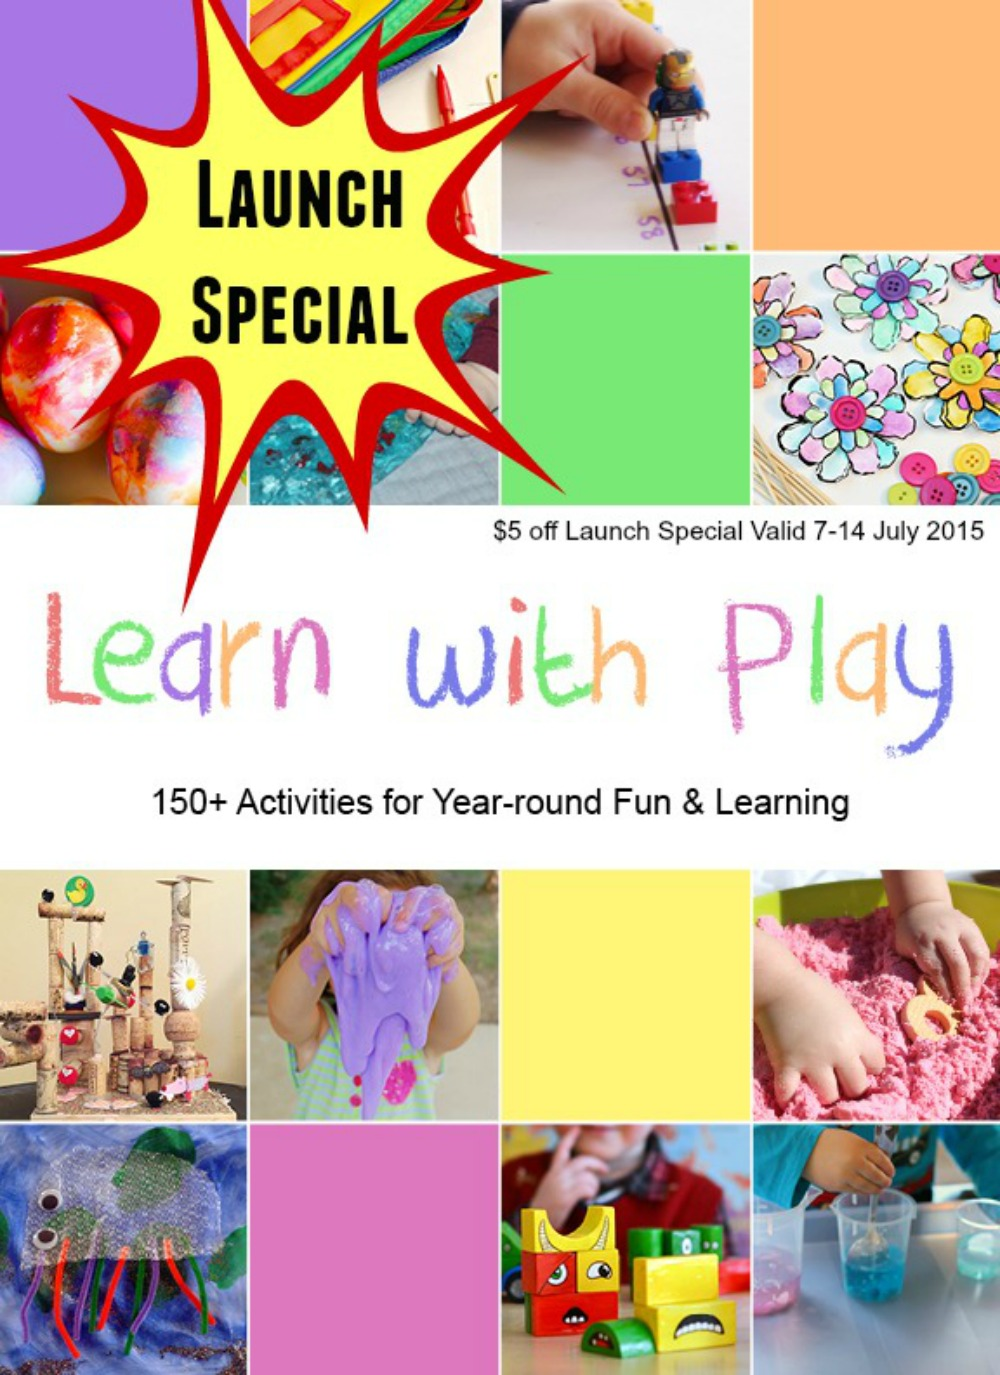 Learn with Play 150+ Activities for Year-Round Fun and Learning Book Release Special